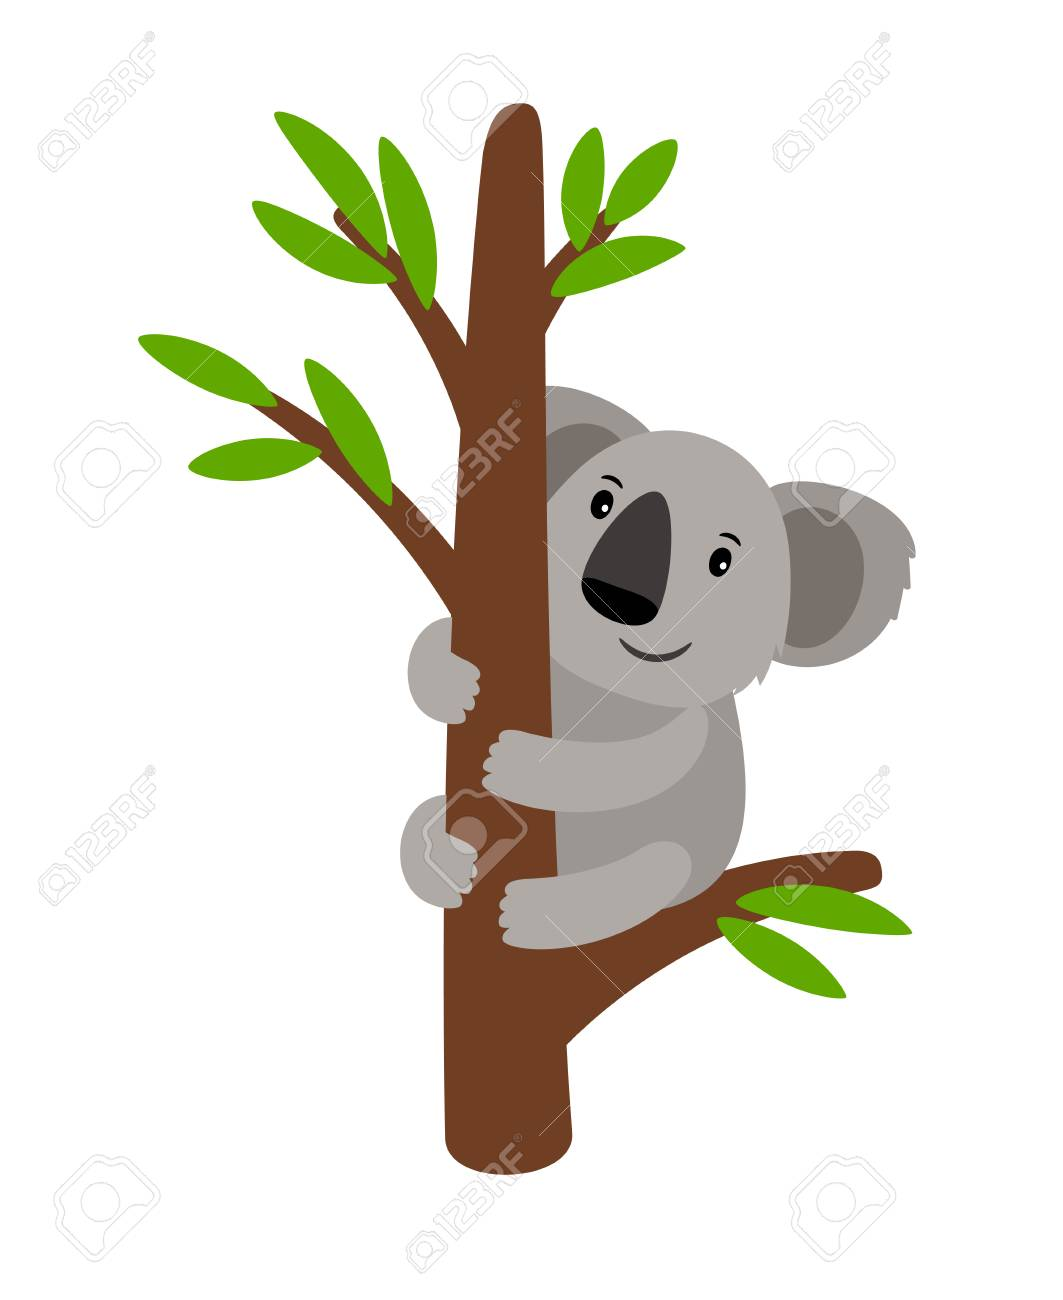 Grey Koala Bear On A Tree Cartoon Animal Icon Isolated On White Royalty Free Cliparts Vectors And Stock Illustration Image 99146280 My daughter wanted me to draw one. grey koala bear on a tree cartoon animal icon isolated on white